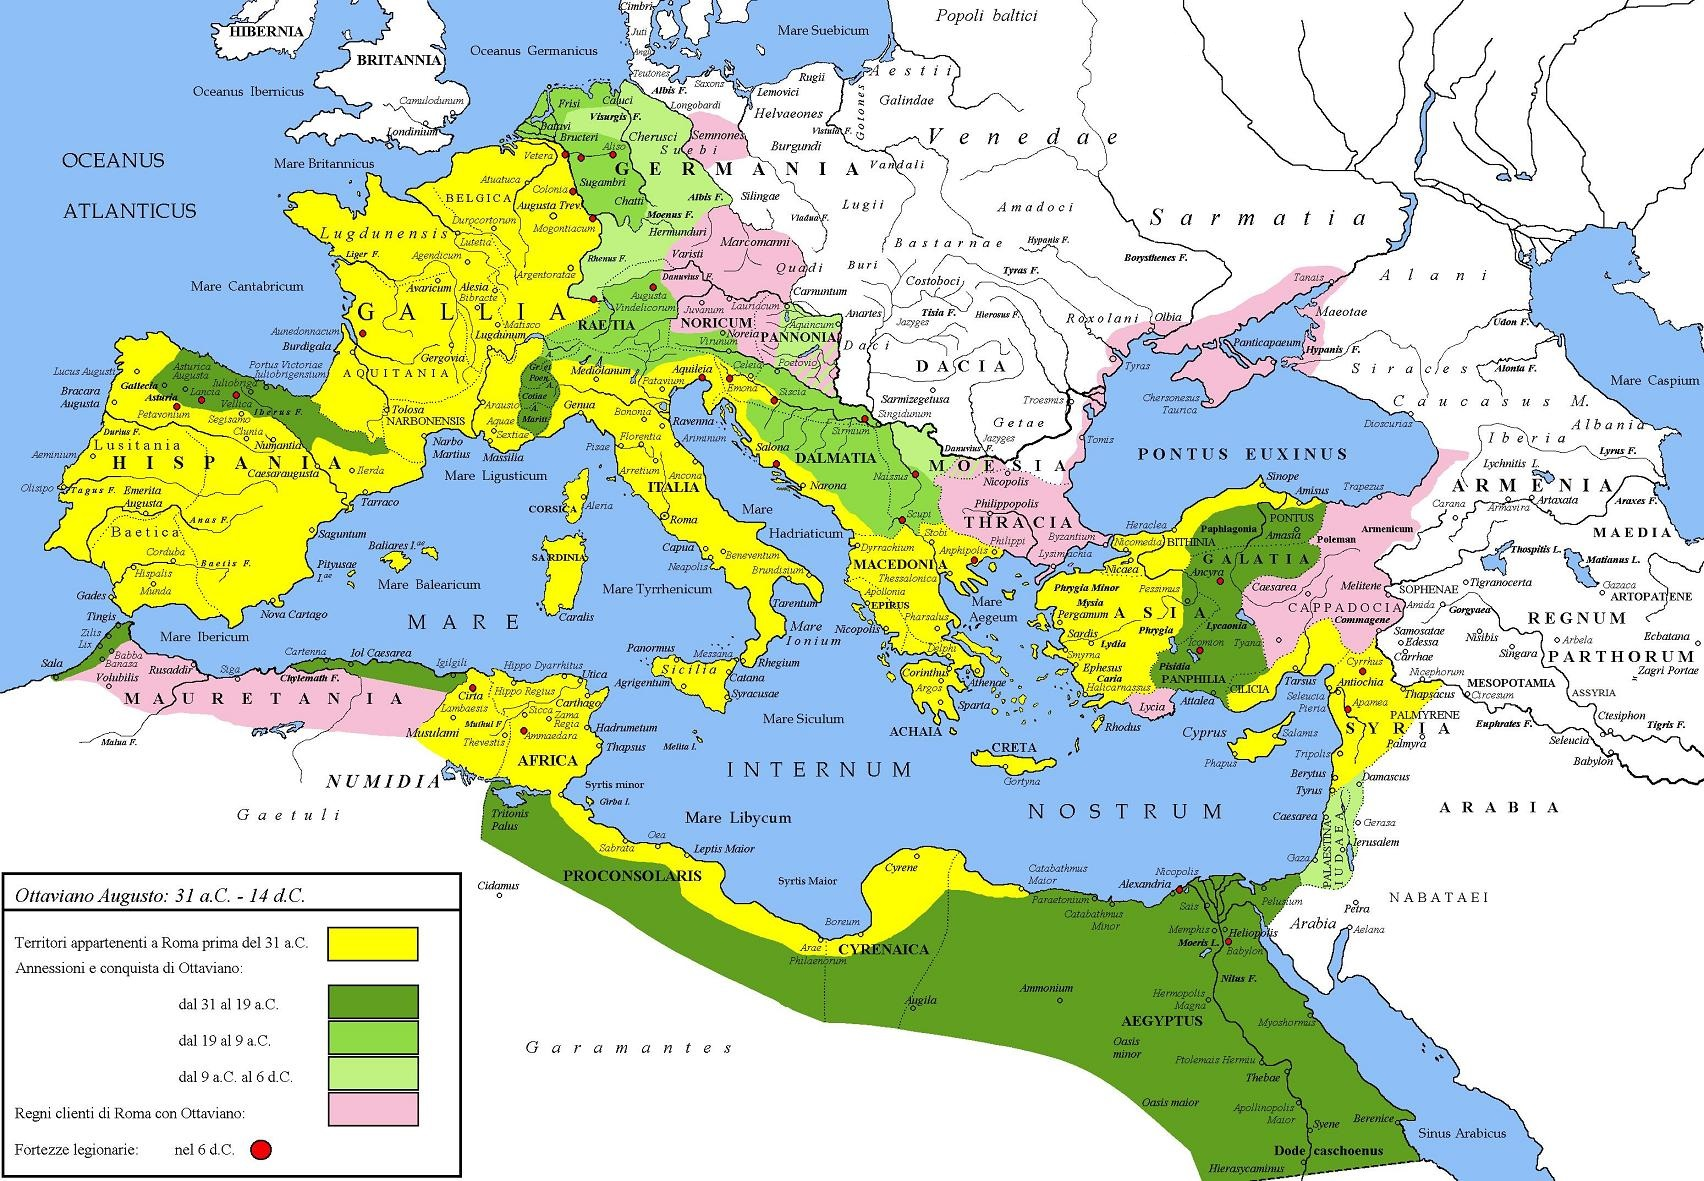 Map of Roman Empire in Time of Augustus .jpg